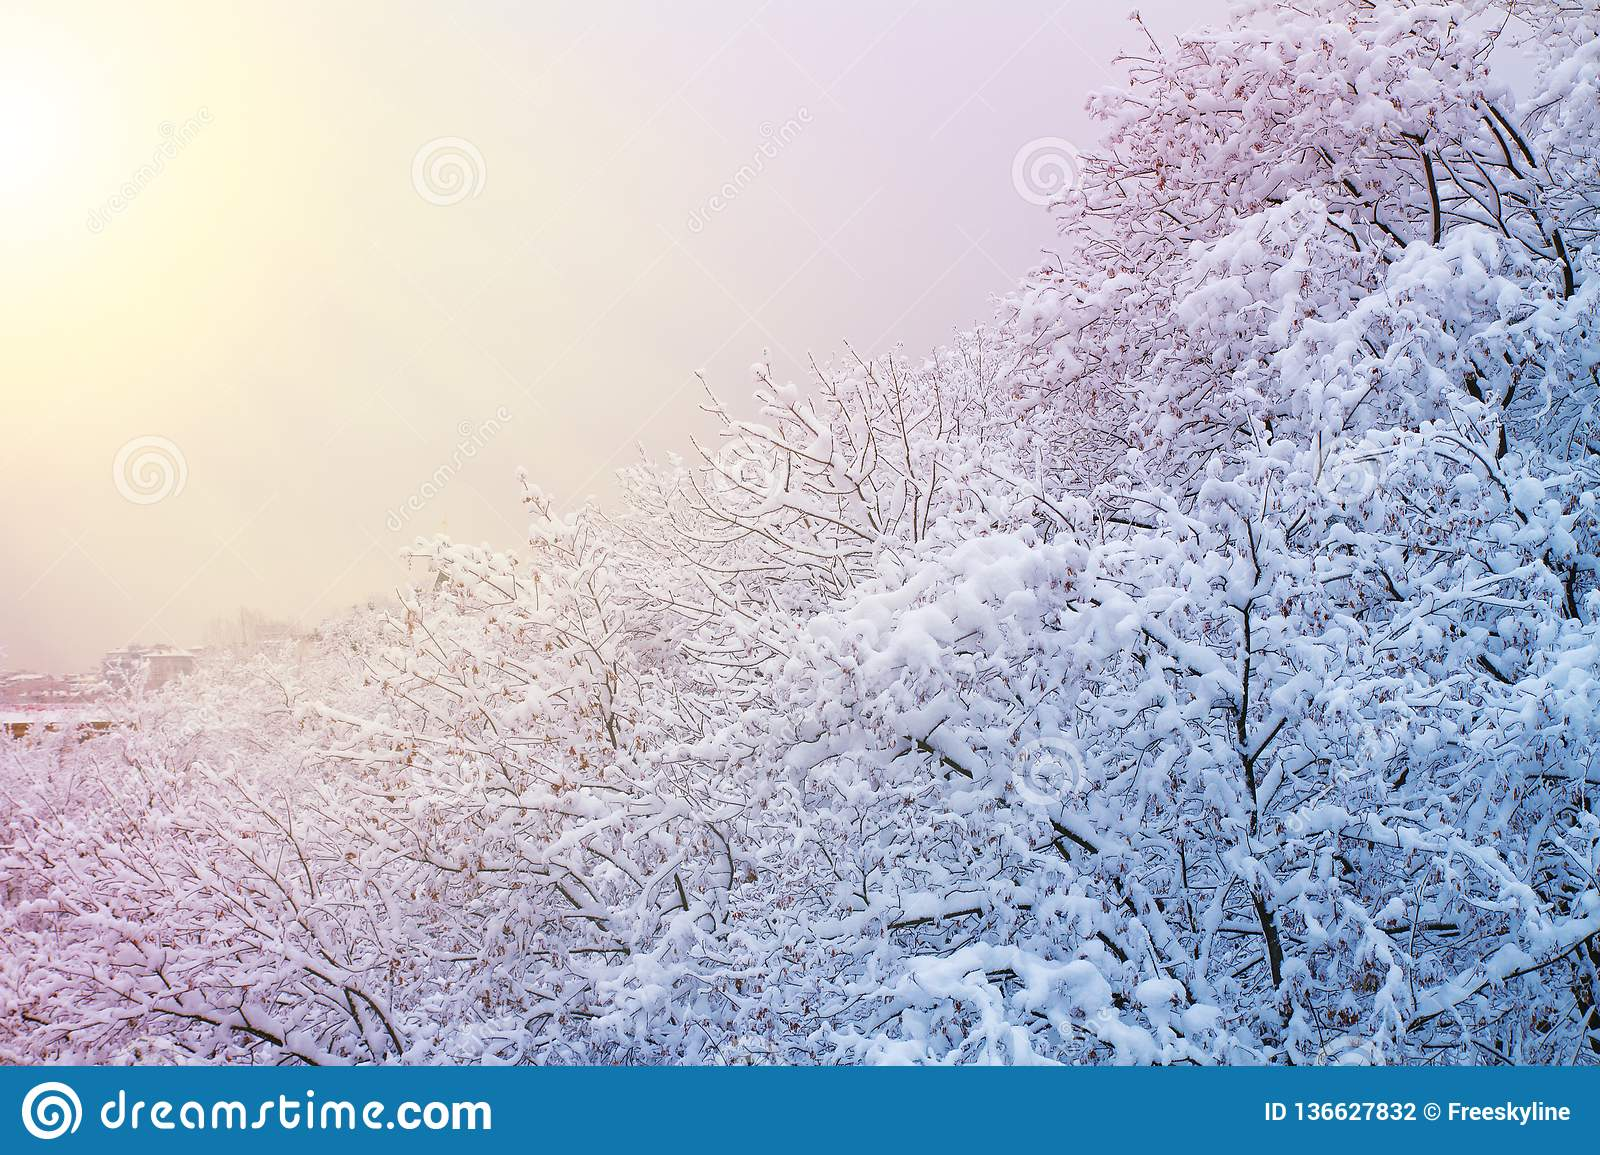 Winter background with snowy trees. Beautiful winter landscape with trees covered with snow in park, forest and sun.